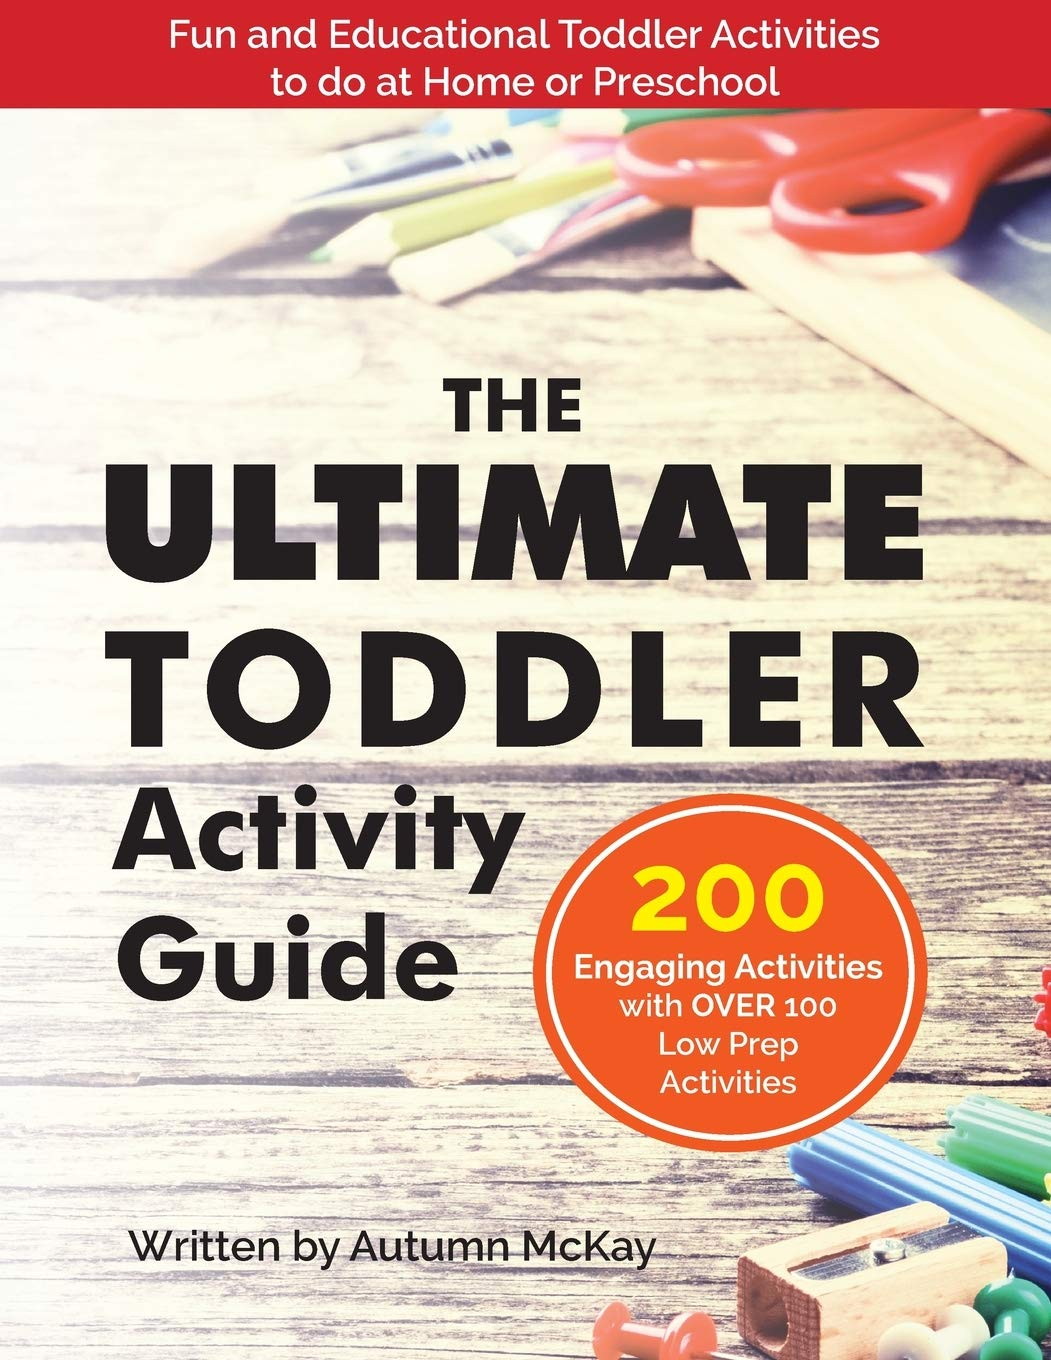 Book Cover: The Ultimate Toddler Activity Guide: Fun & Educational Toddler Activities to do at Home or Preschool